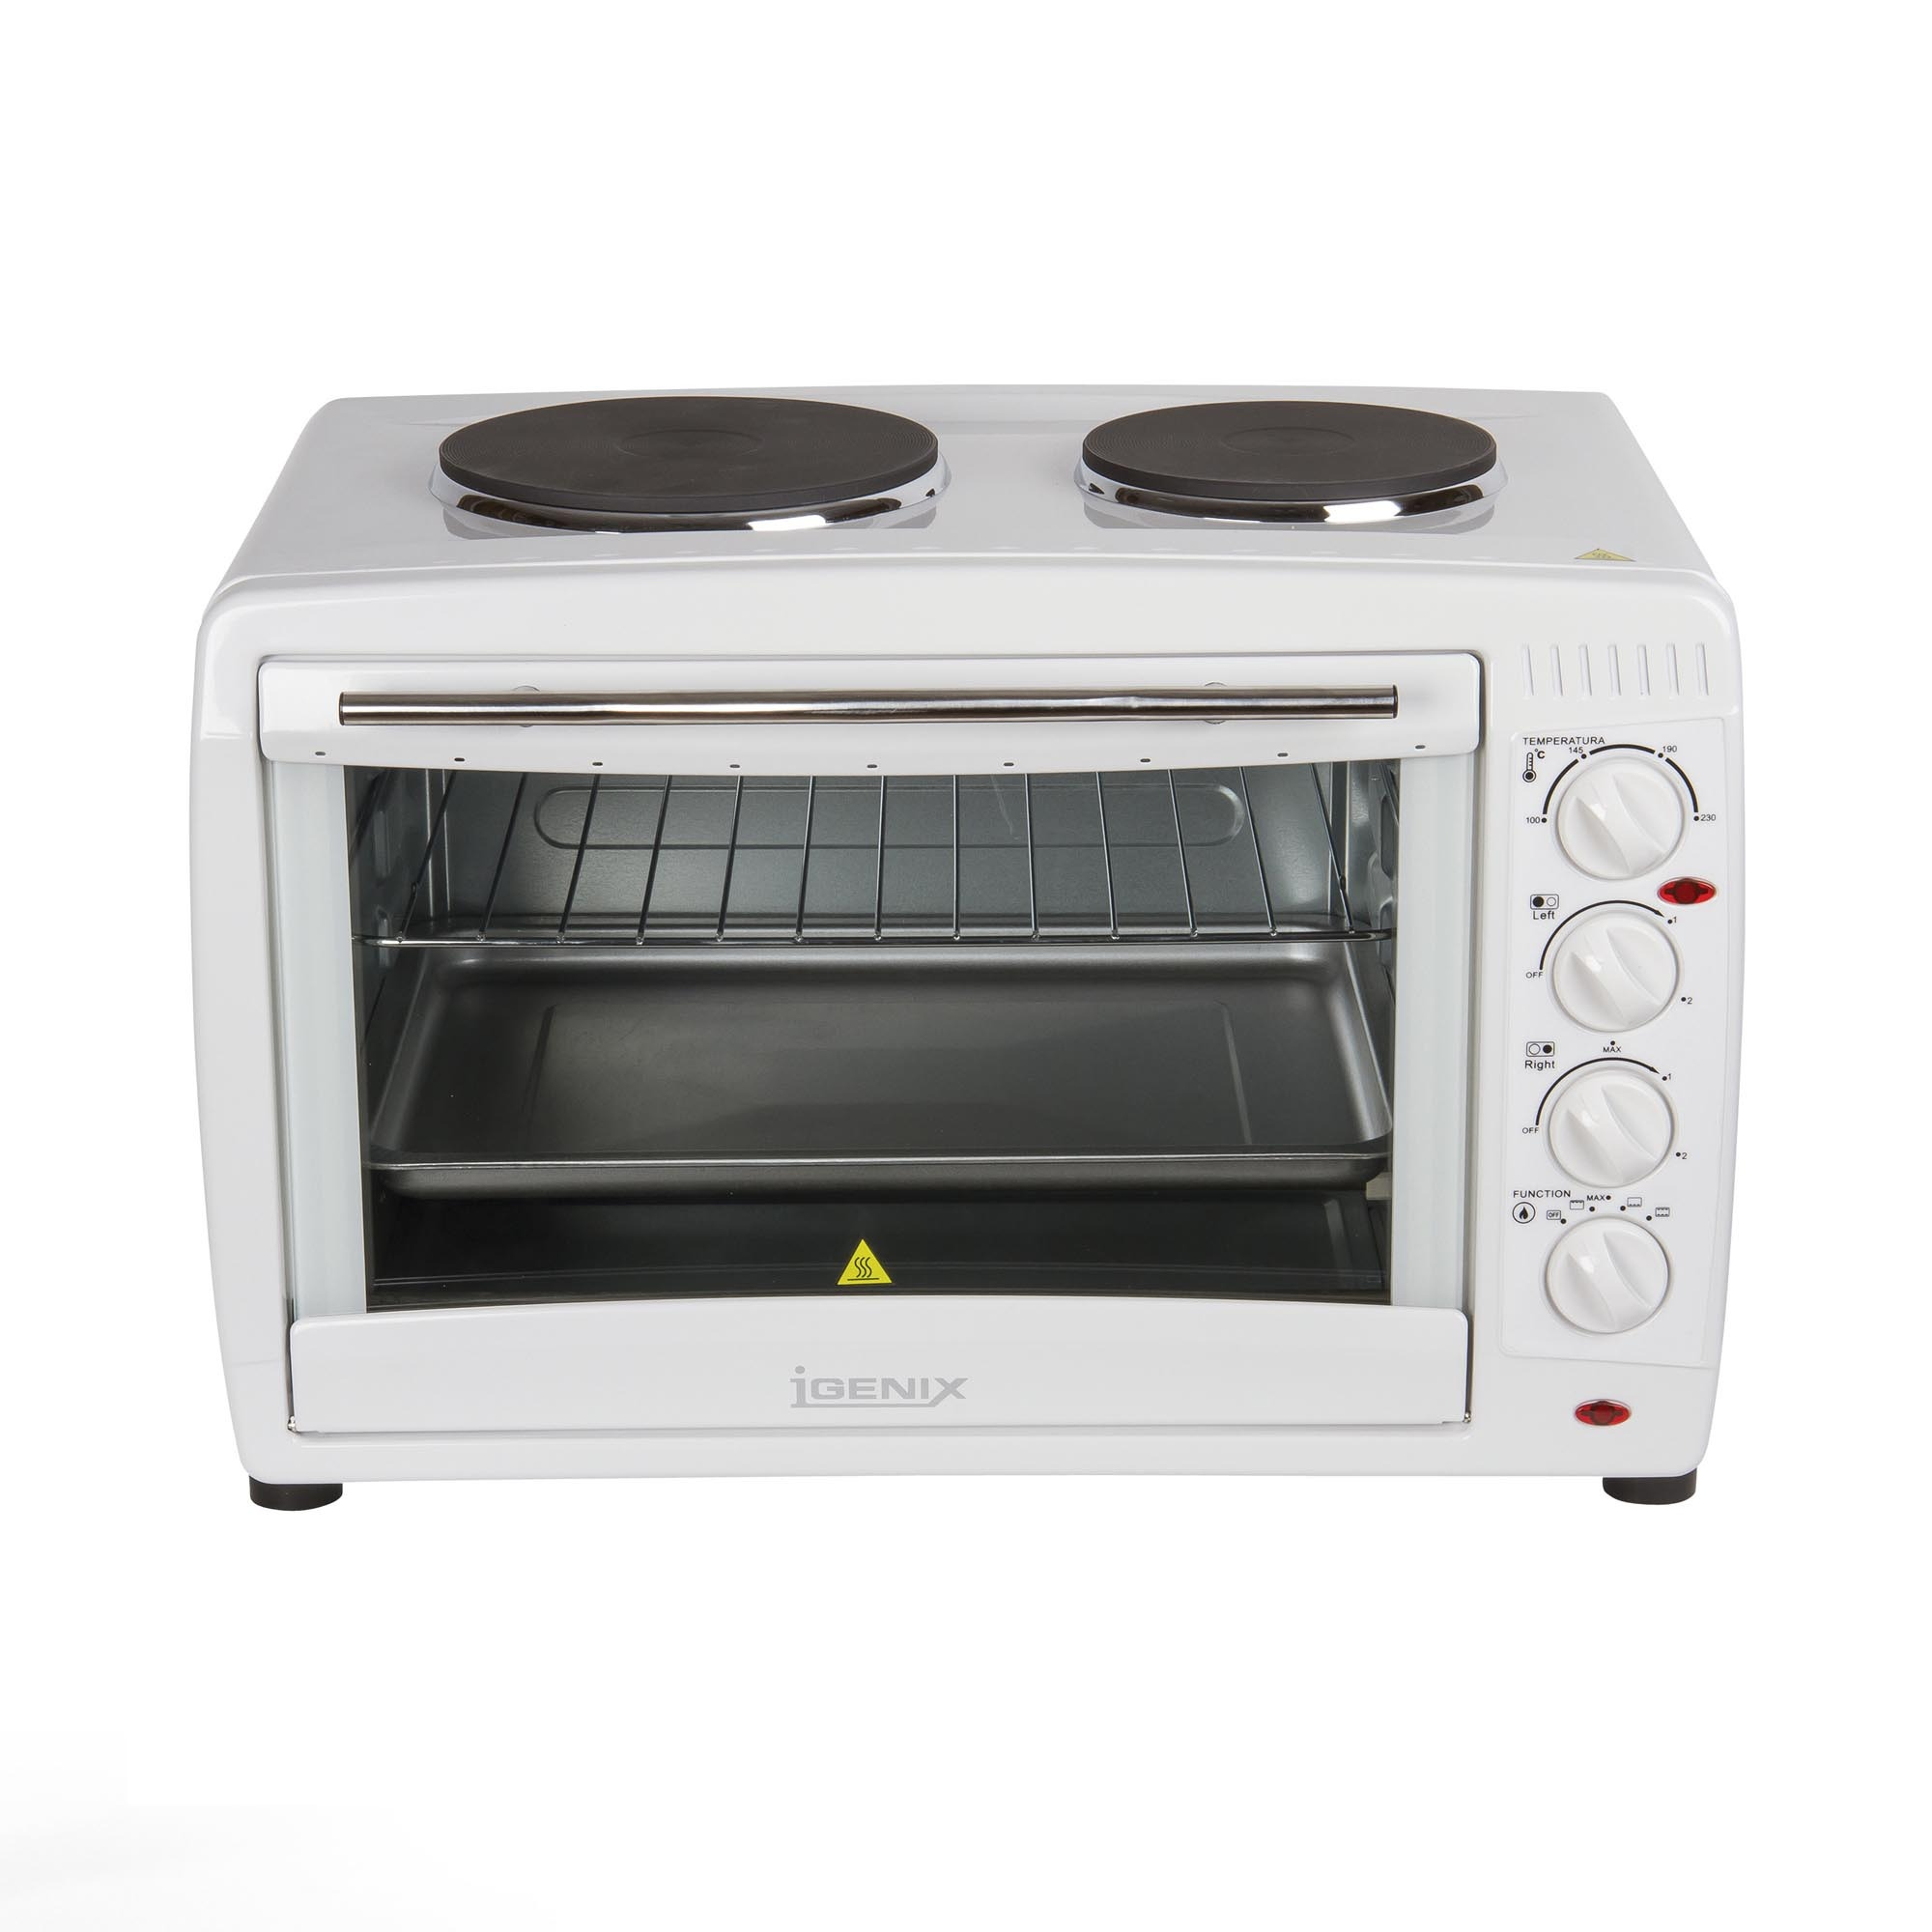 Mini Oven with 2 Hotplates 26 Ltr